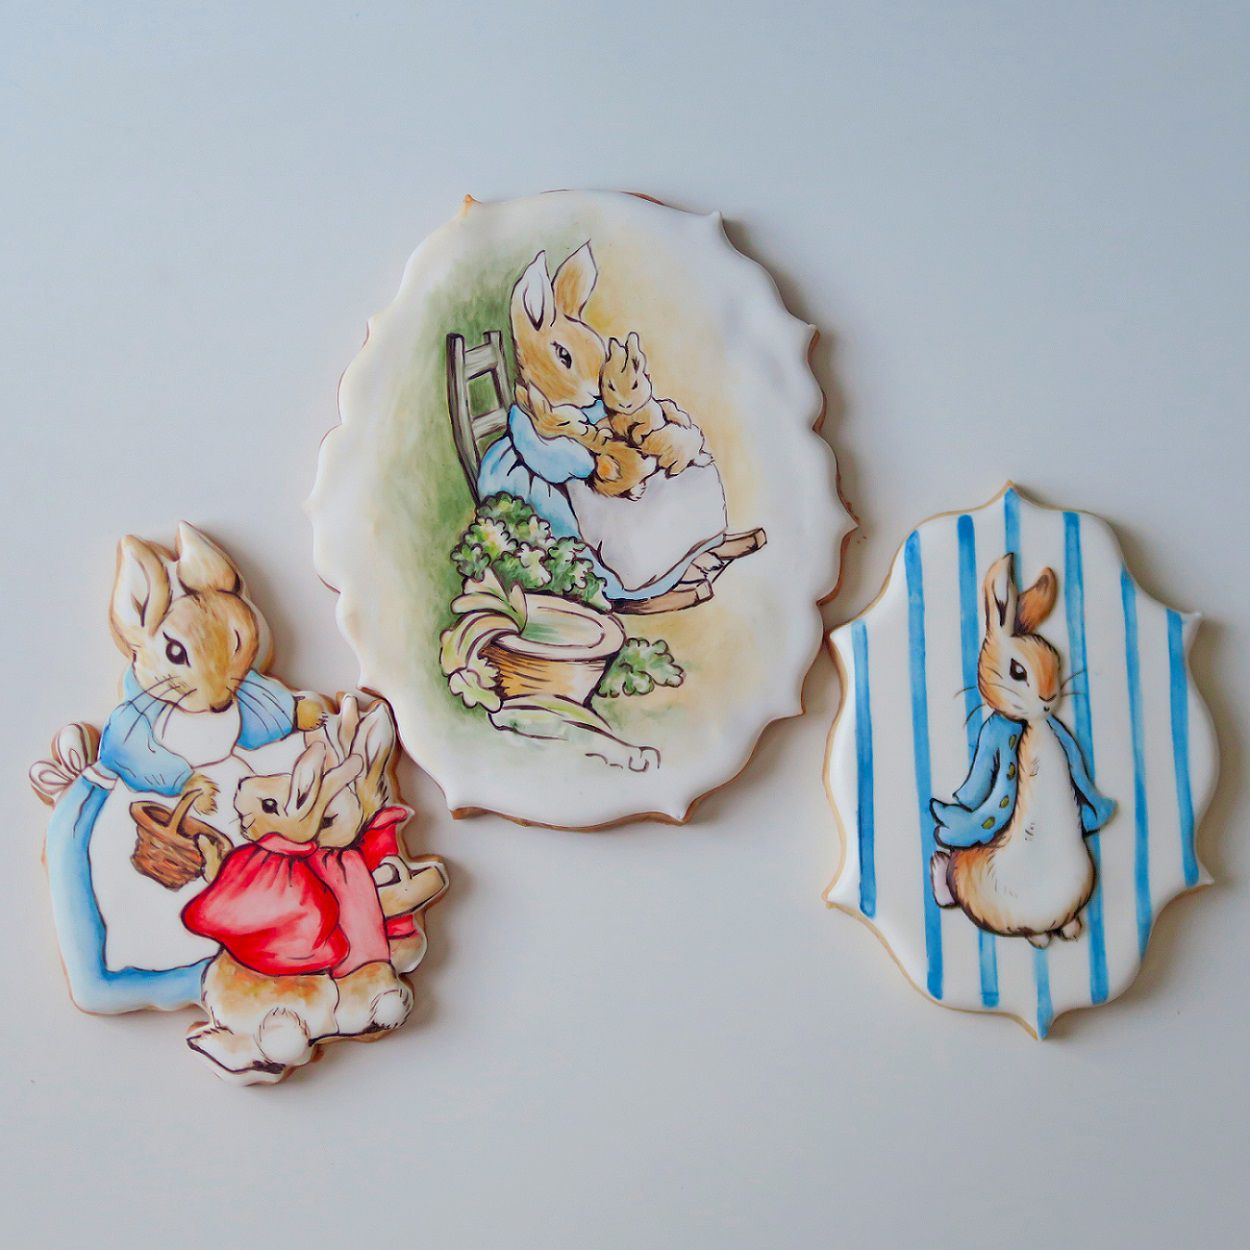 Curso Biscoitos Decorados: Pastel Seco Beatrix Potter